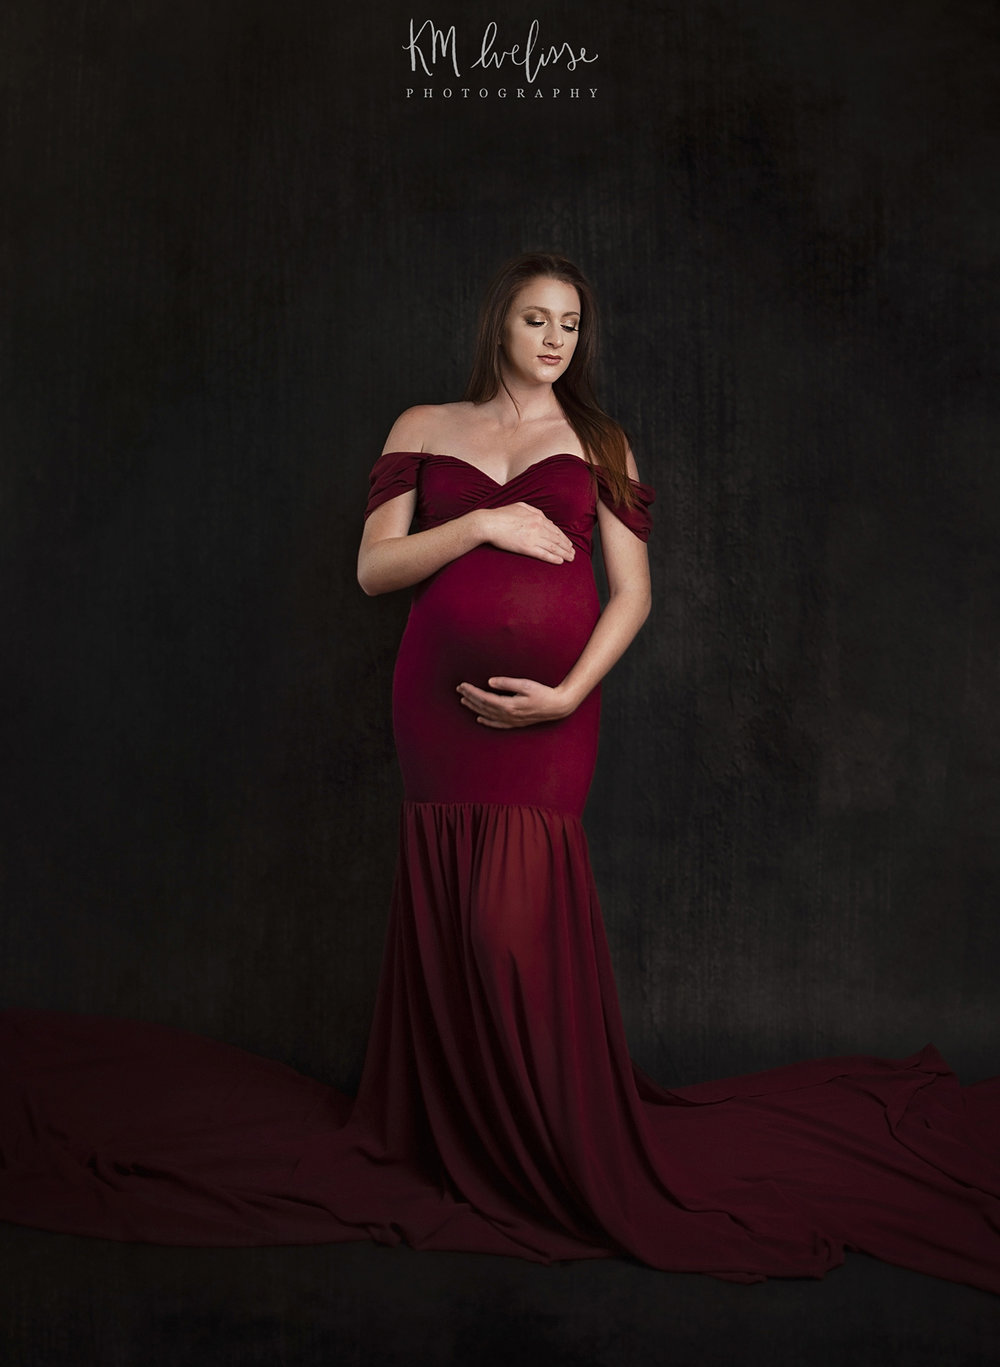 One of my beautiful maternity clients was amazing enough to model this maternity dress for me in my home studio! Maternity photography on Oahu Hawaii